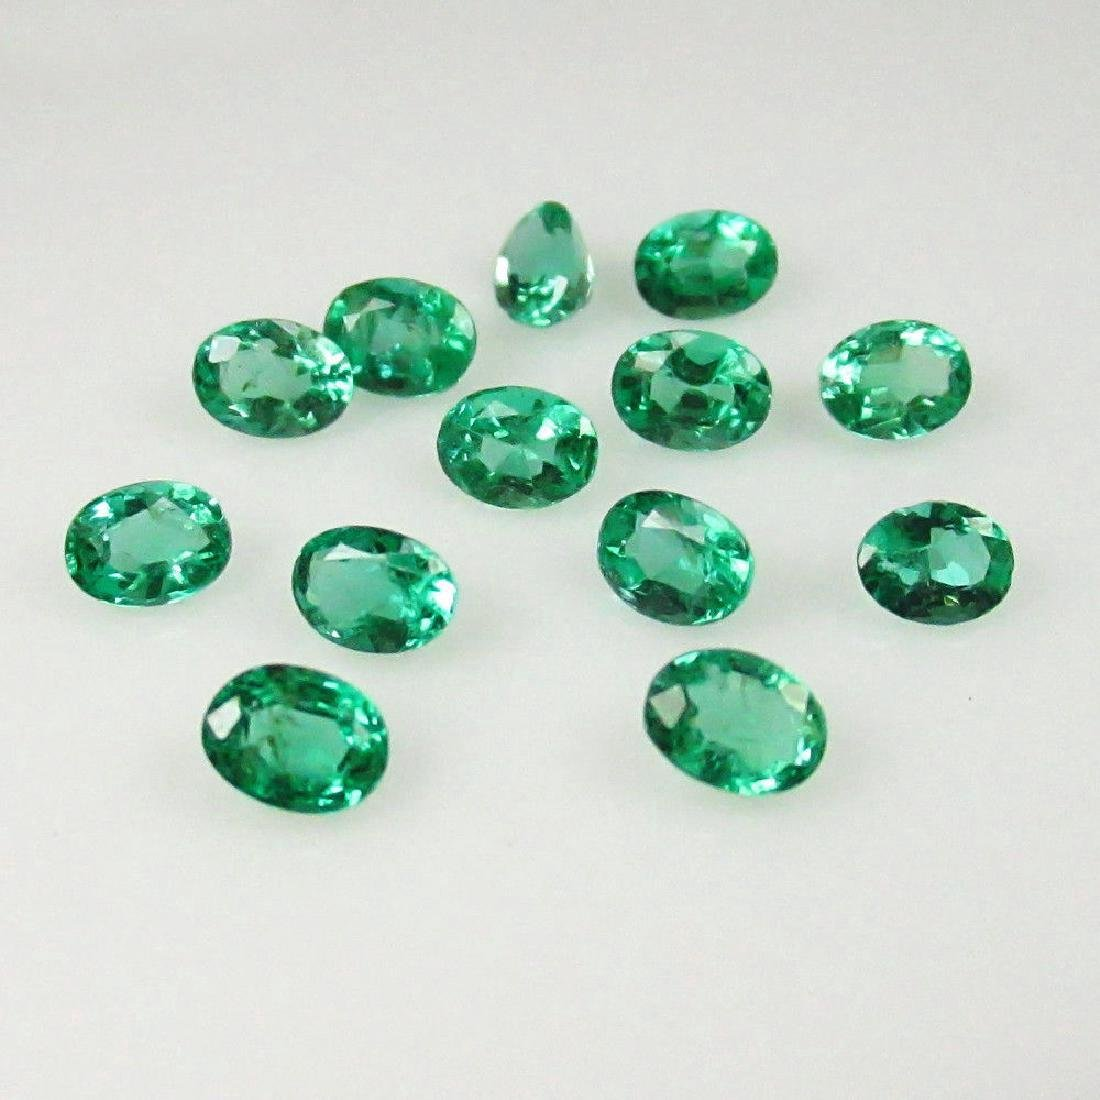 2.36 Carat - 13 Loose Emeralds - 2